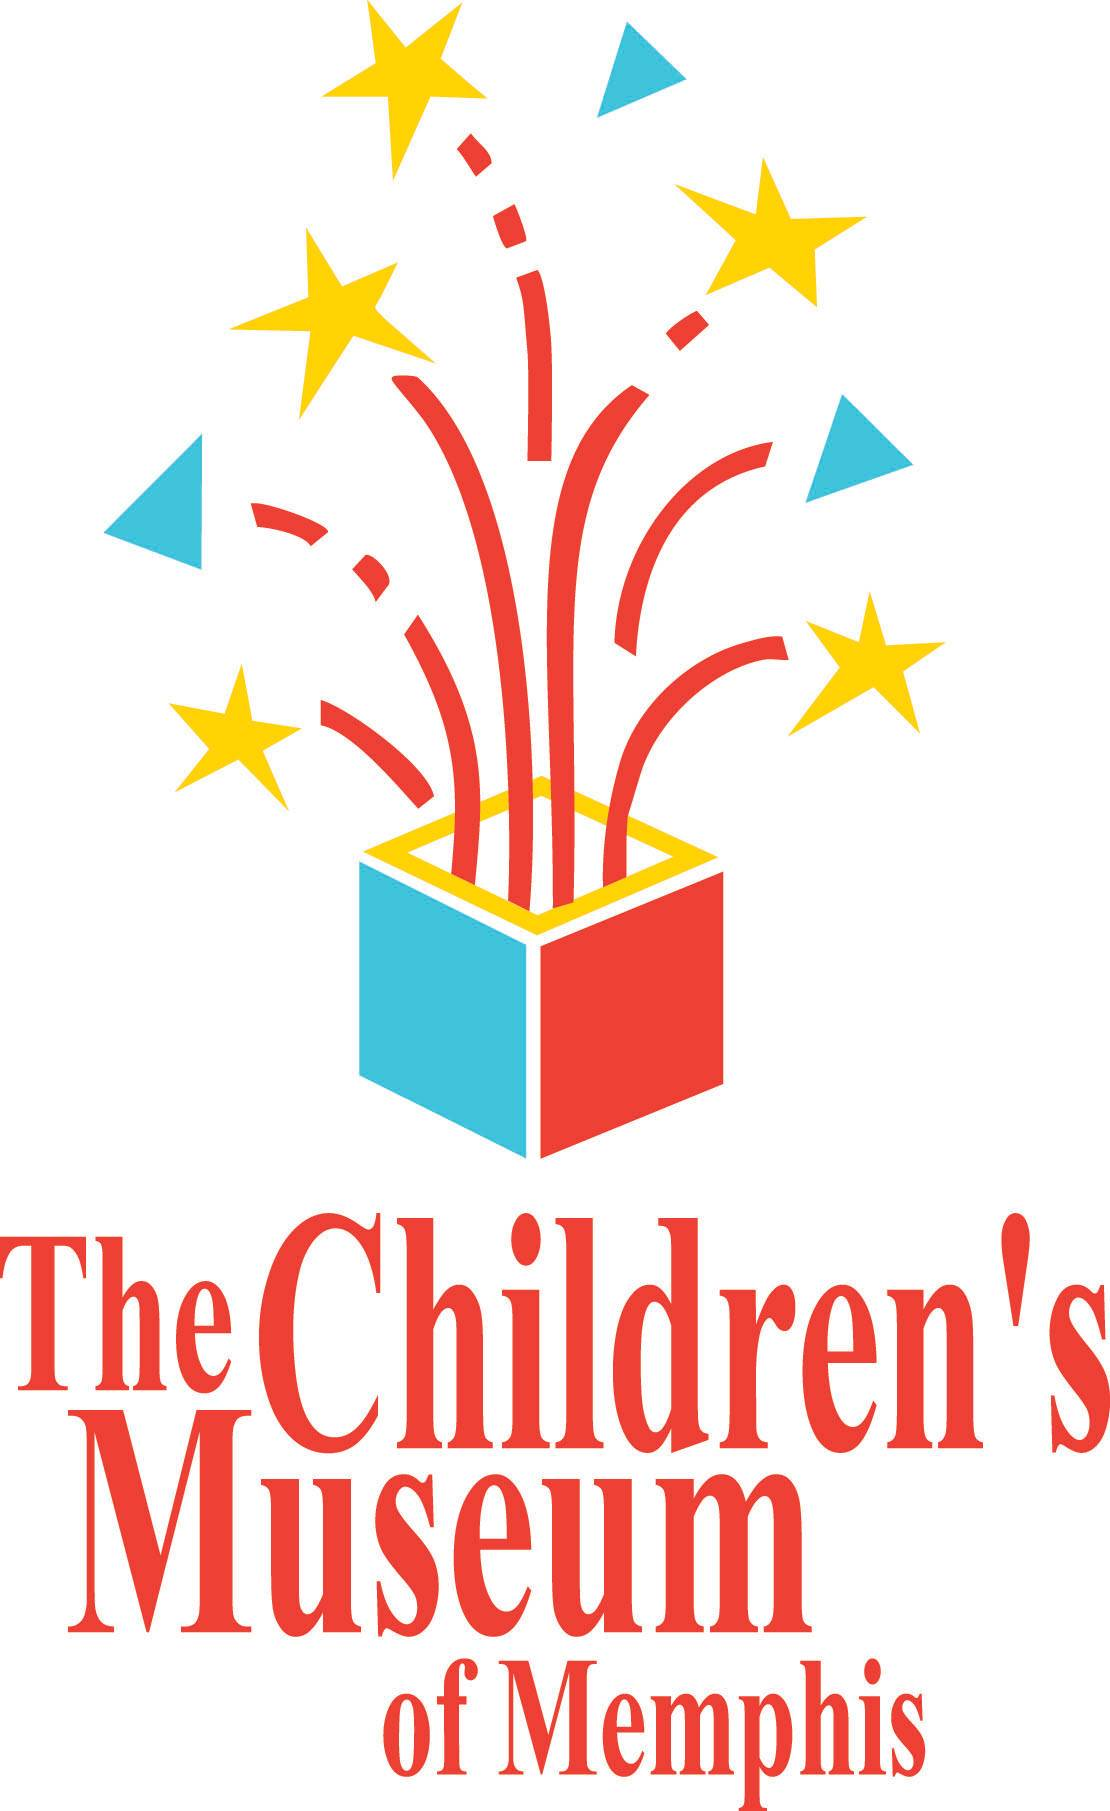 Logo of The Children's Museum of Memphis